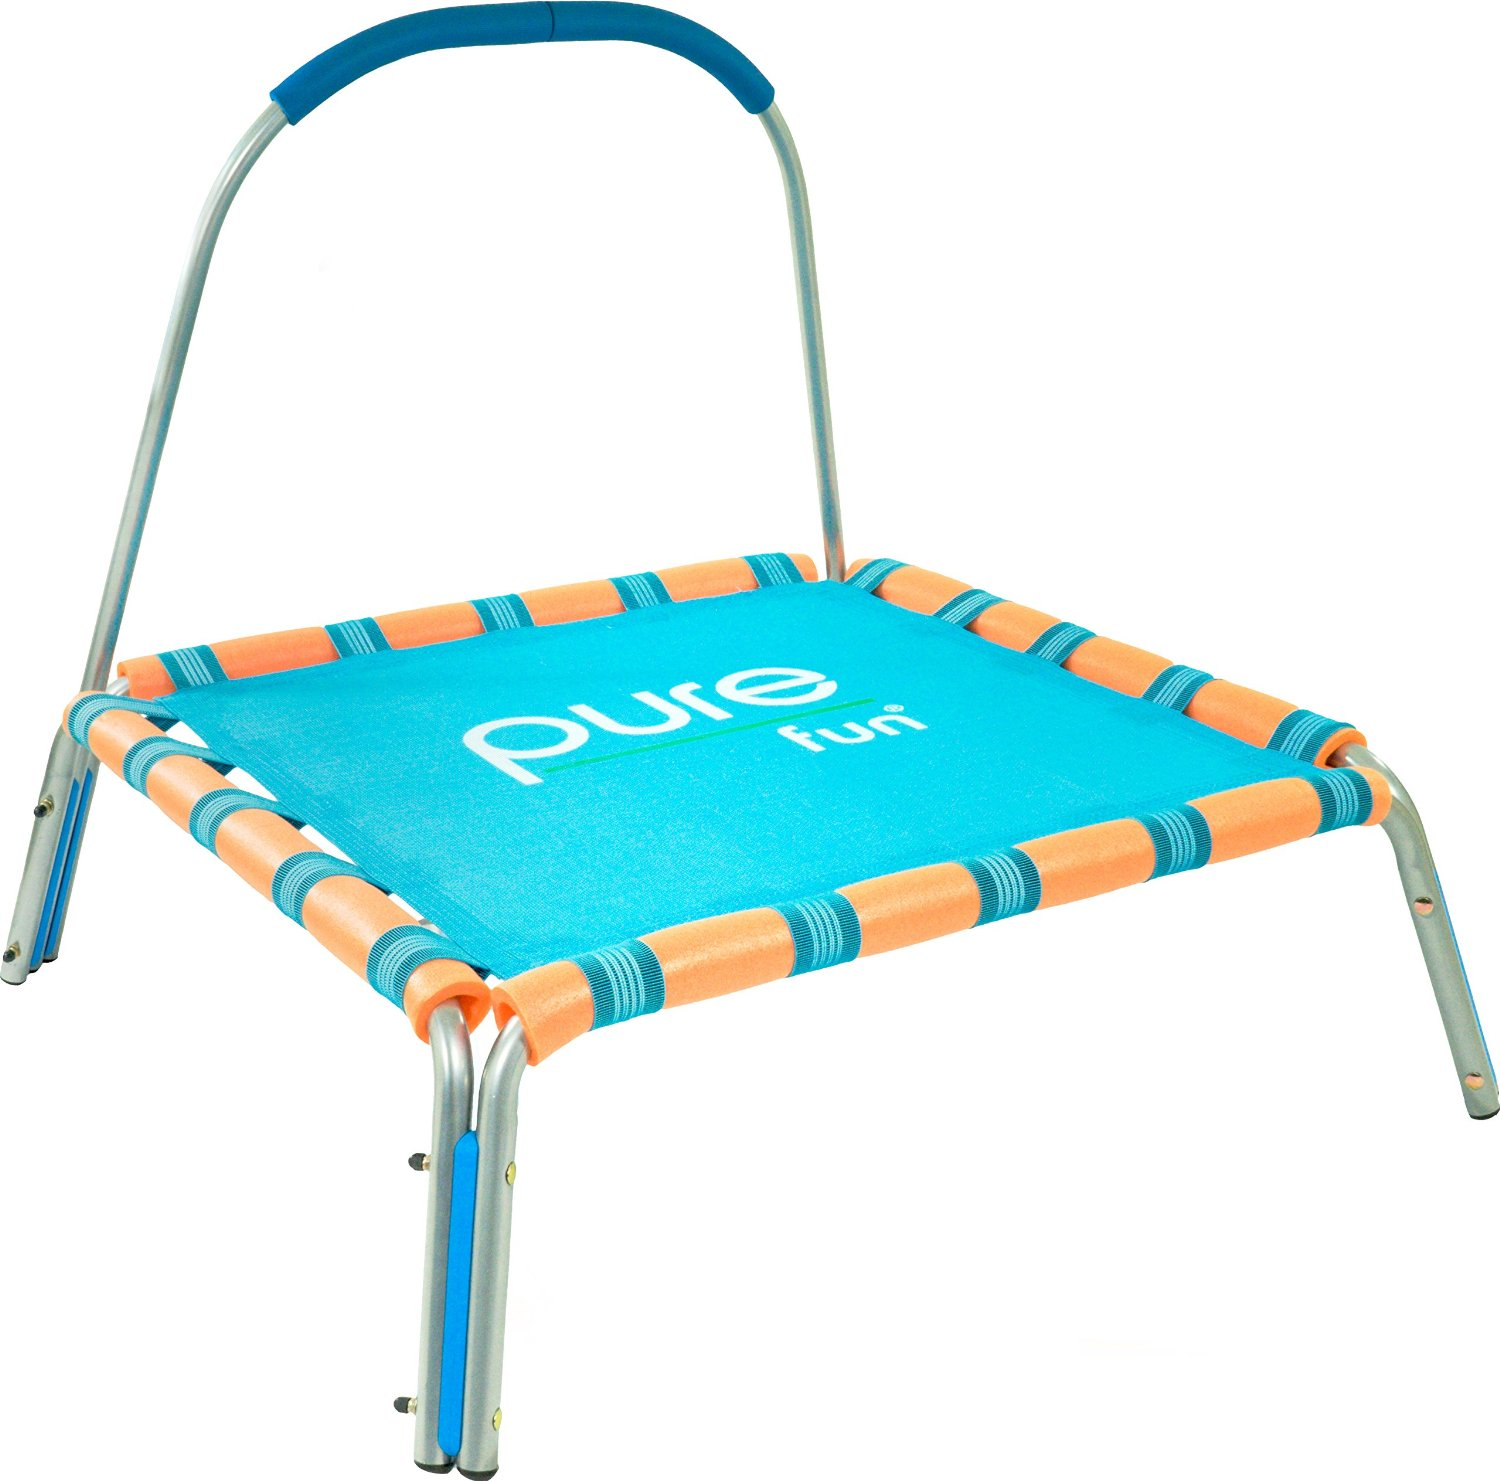 Top 10 Best Toddler Trampoline Reviews Your Guide 2019